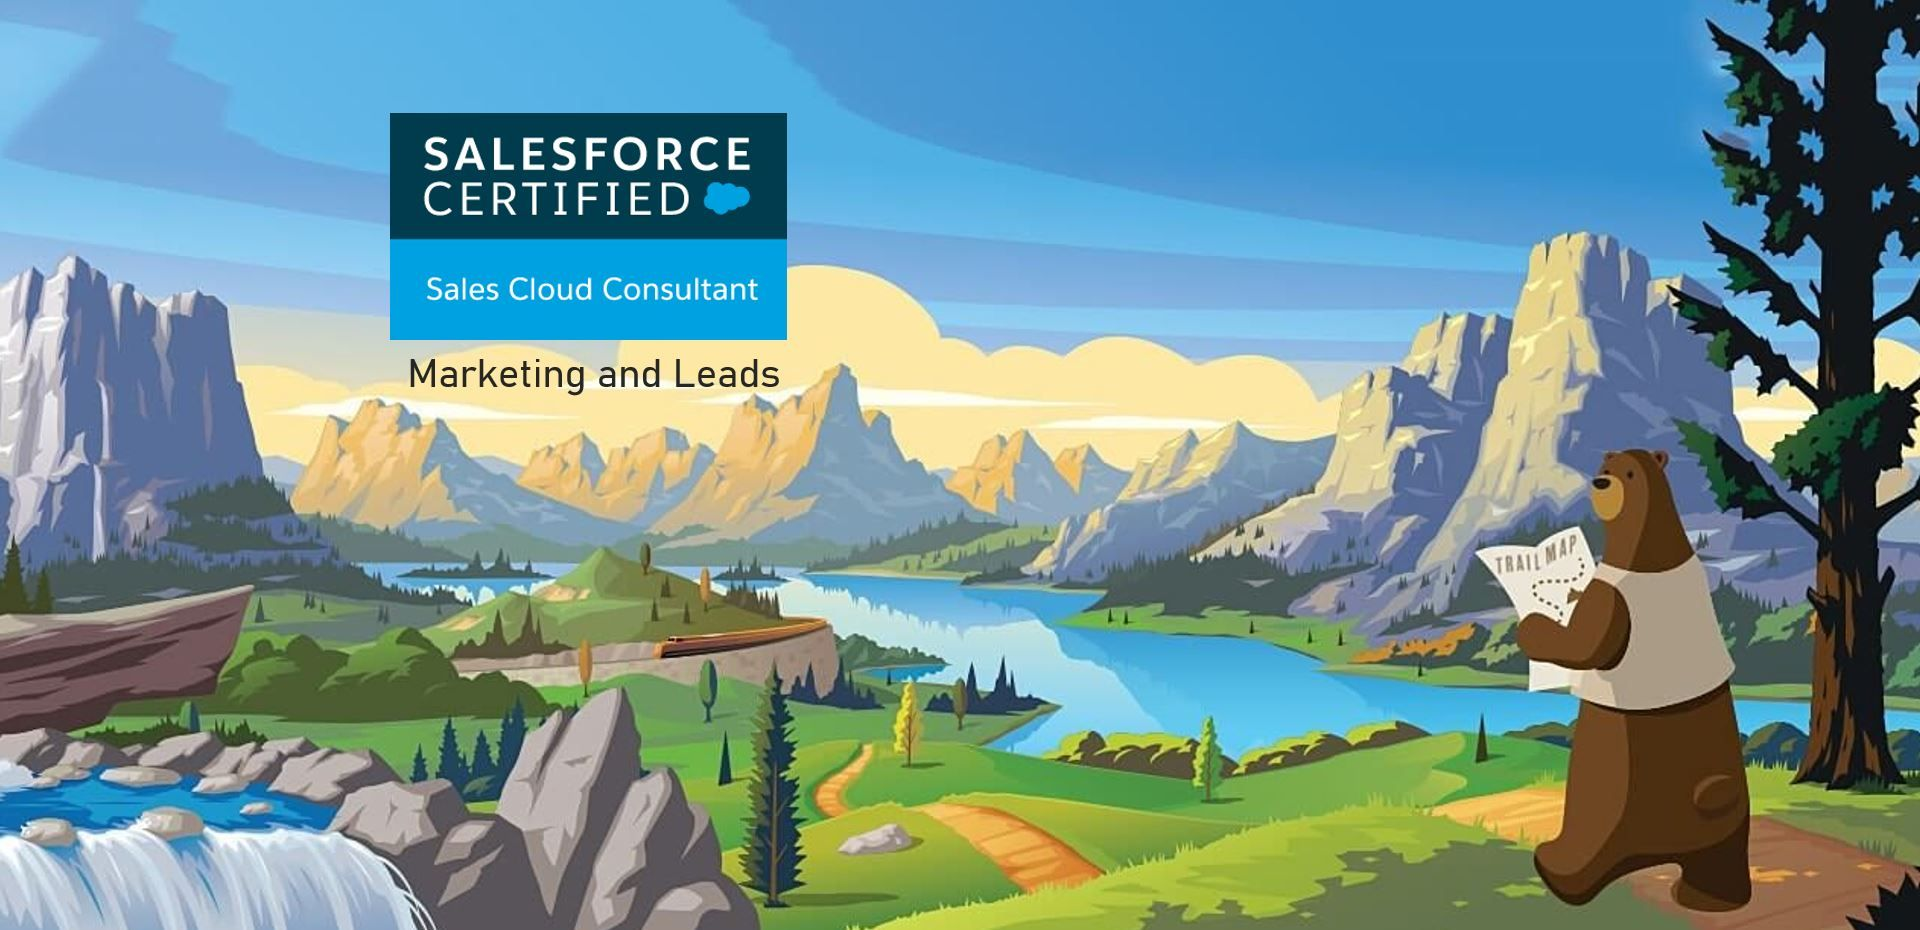 Salesforce Sales Cloud Consultant Exam Preparation: Marketing and Leads